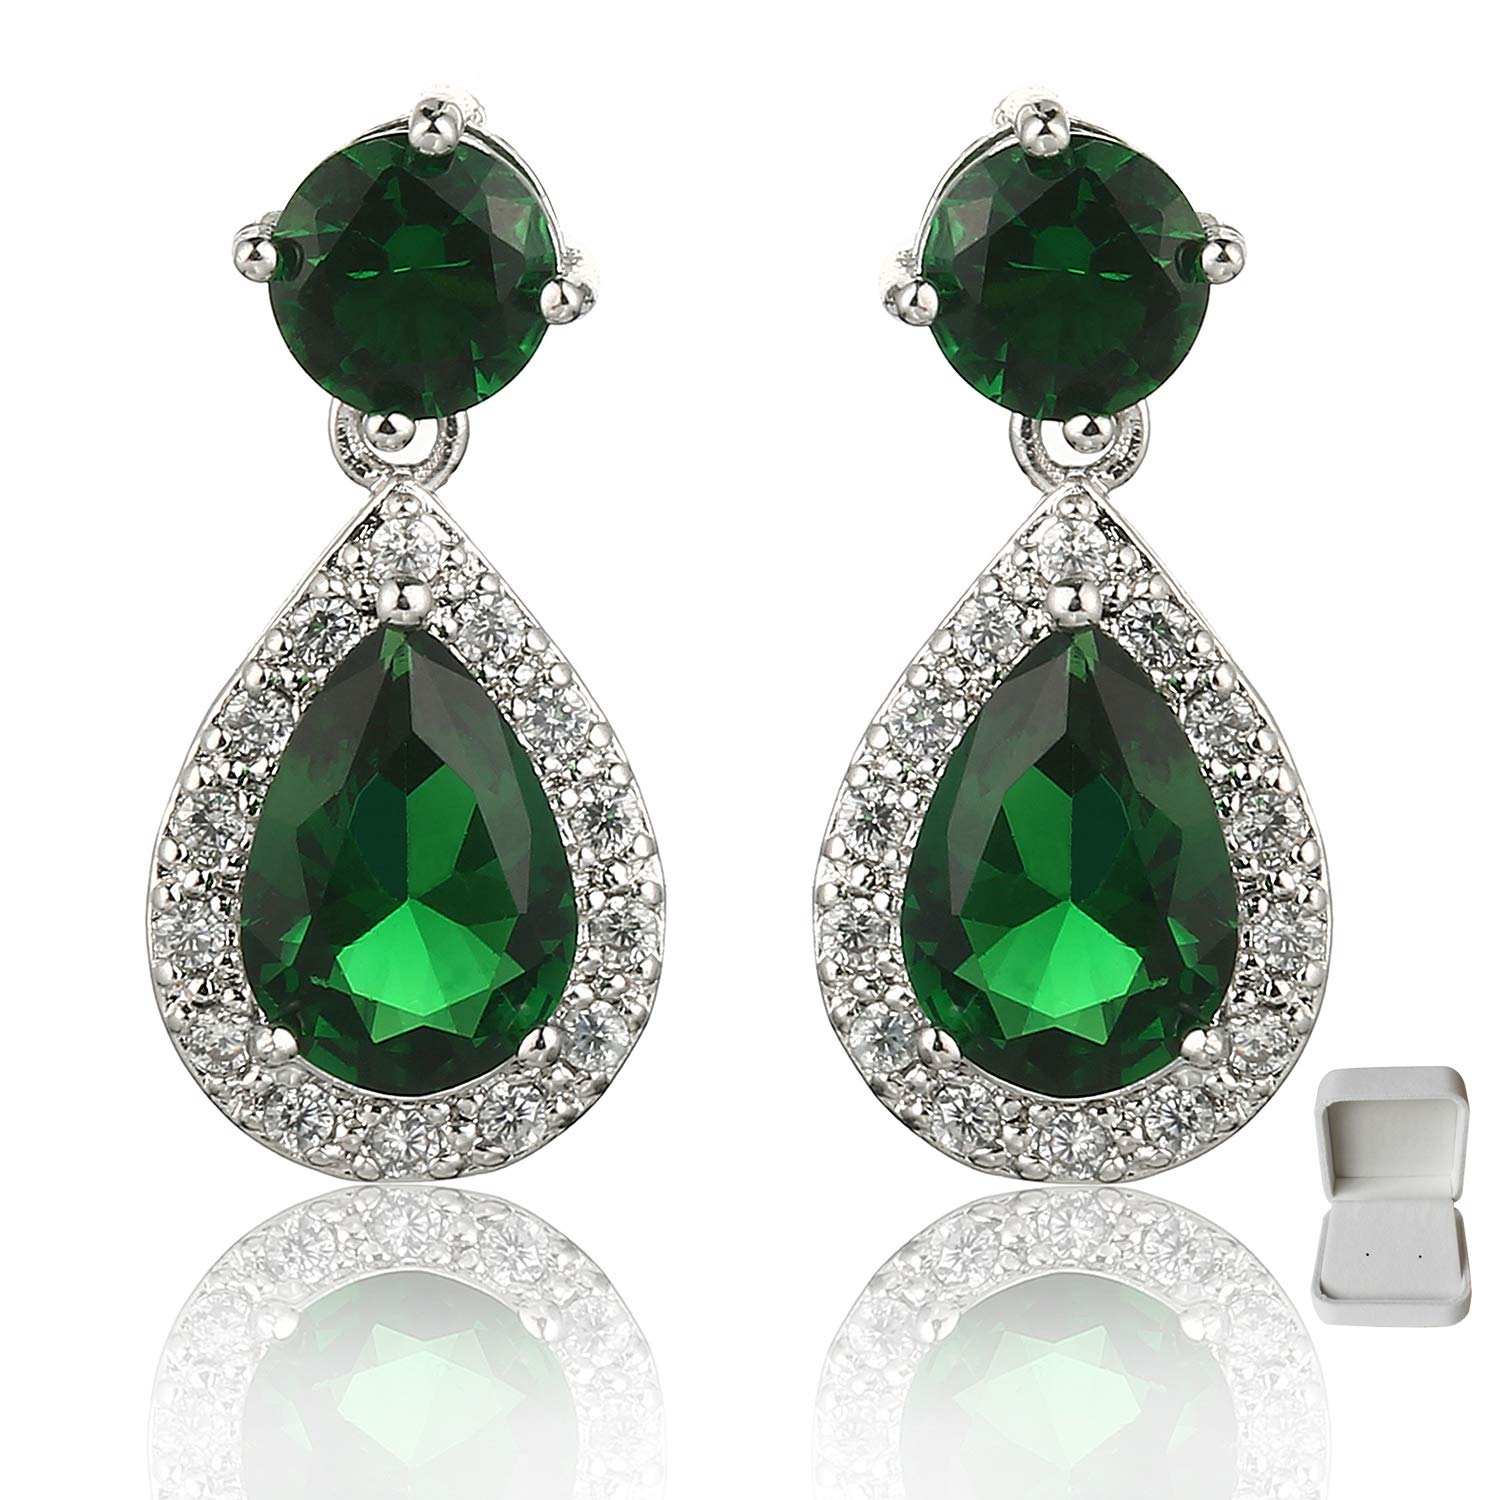 2014 Fashion Woman Online Jewelry Elegant Even Luxury Shiny Crystal Teardrop Big Drop Earrings Earrings